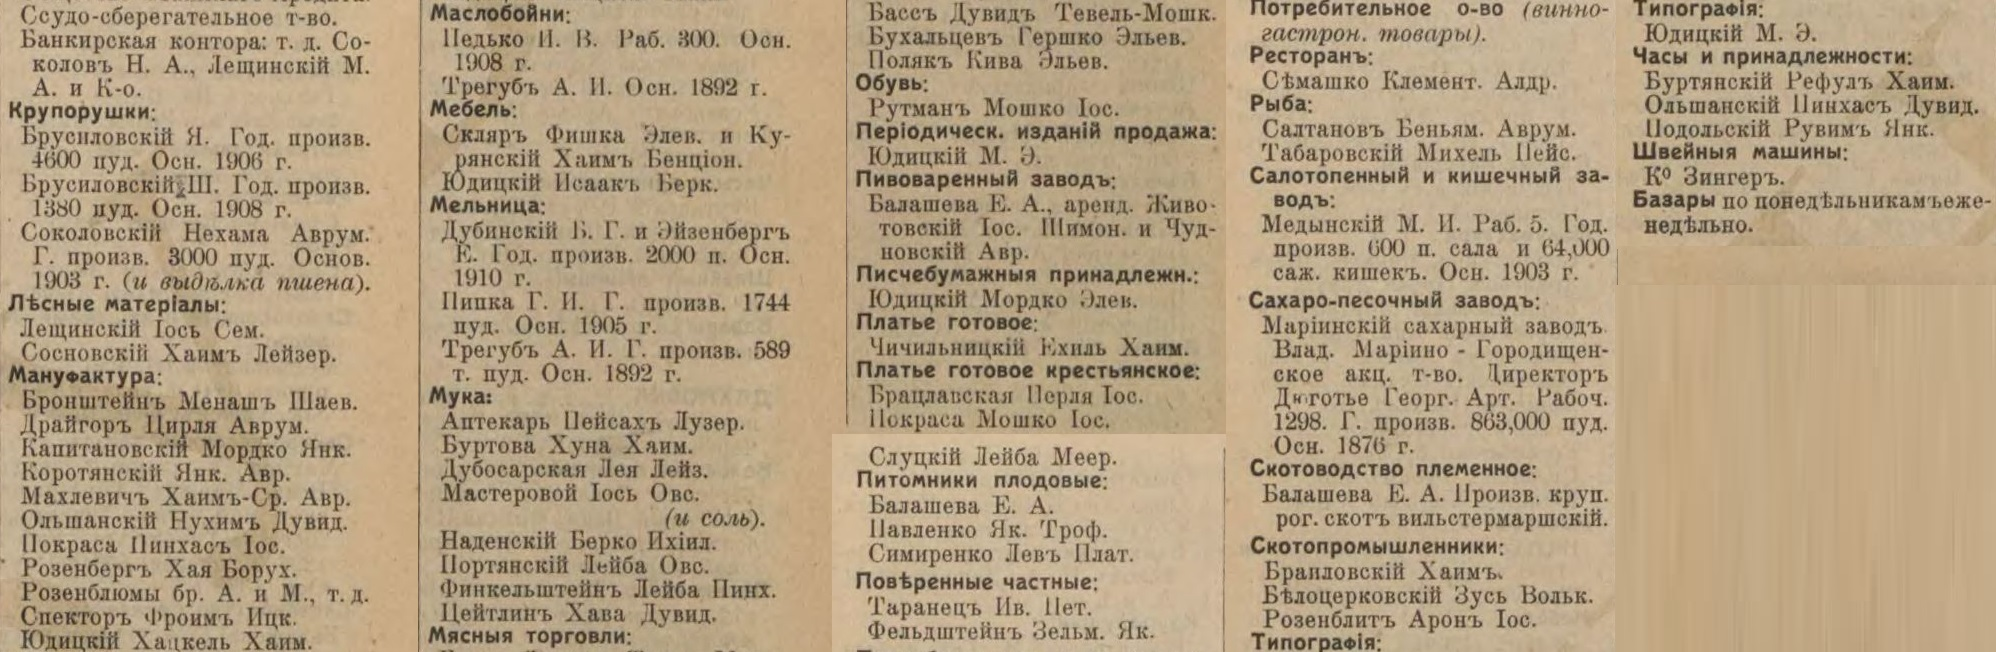 Horodyshche entrepreneurs list from Russian Empire Business Directories by 1913, part 2